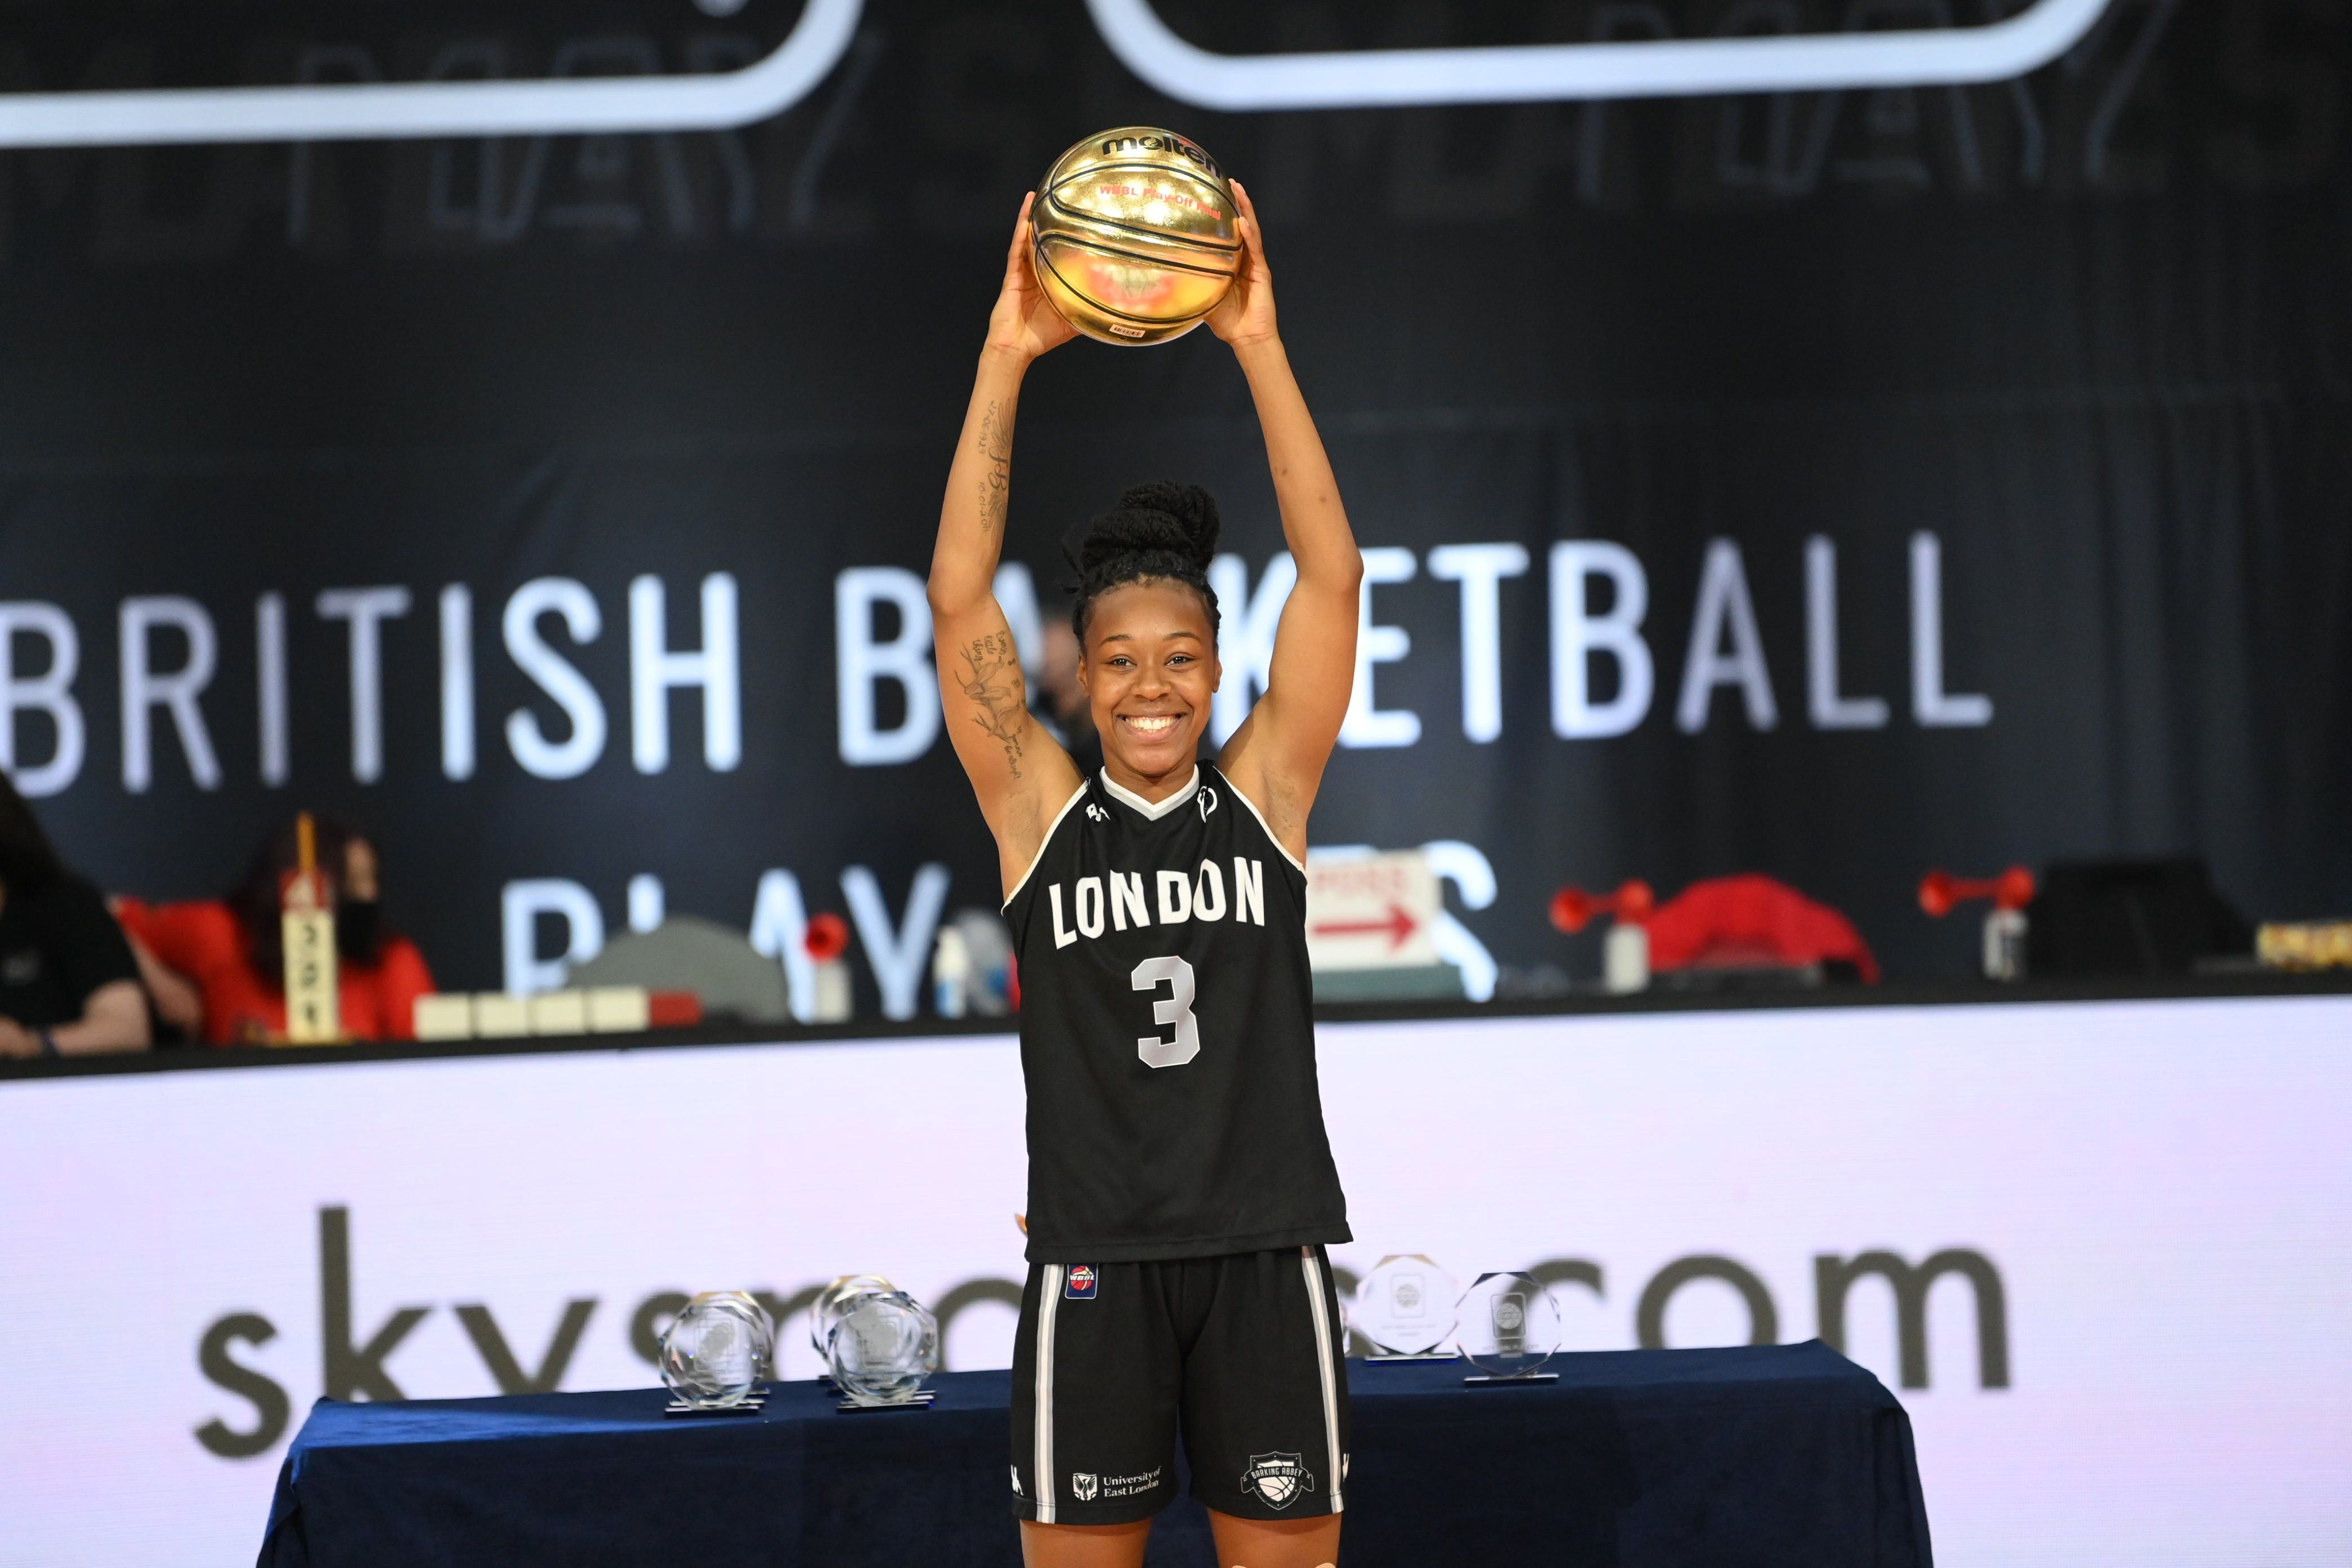 Beckford-Norton on picking up WBBL Play Off Final MVP